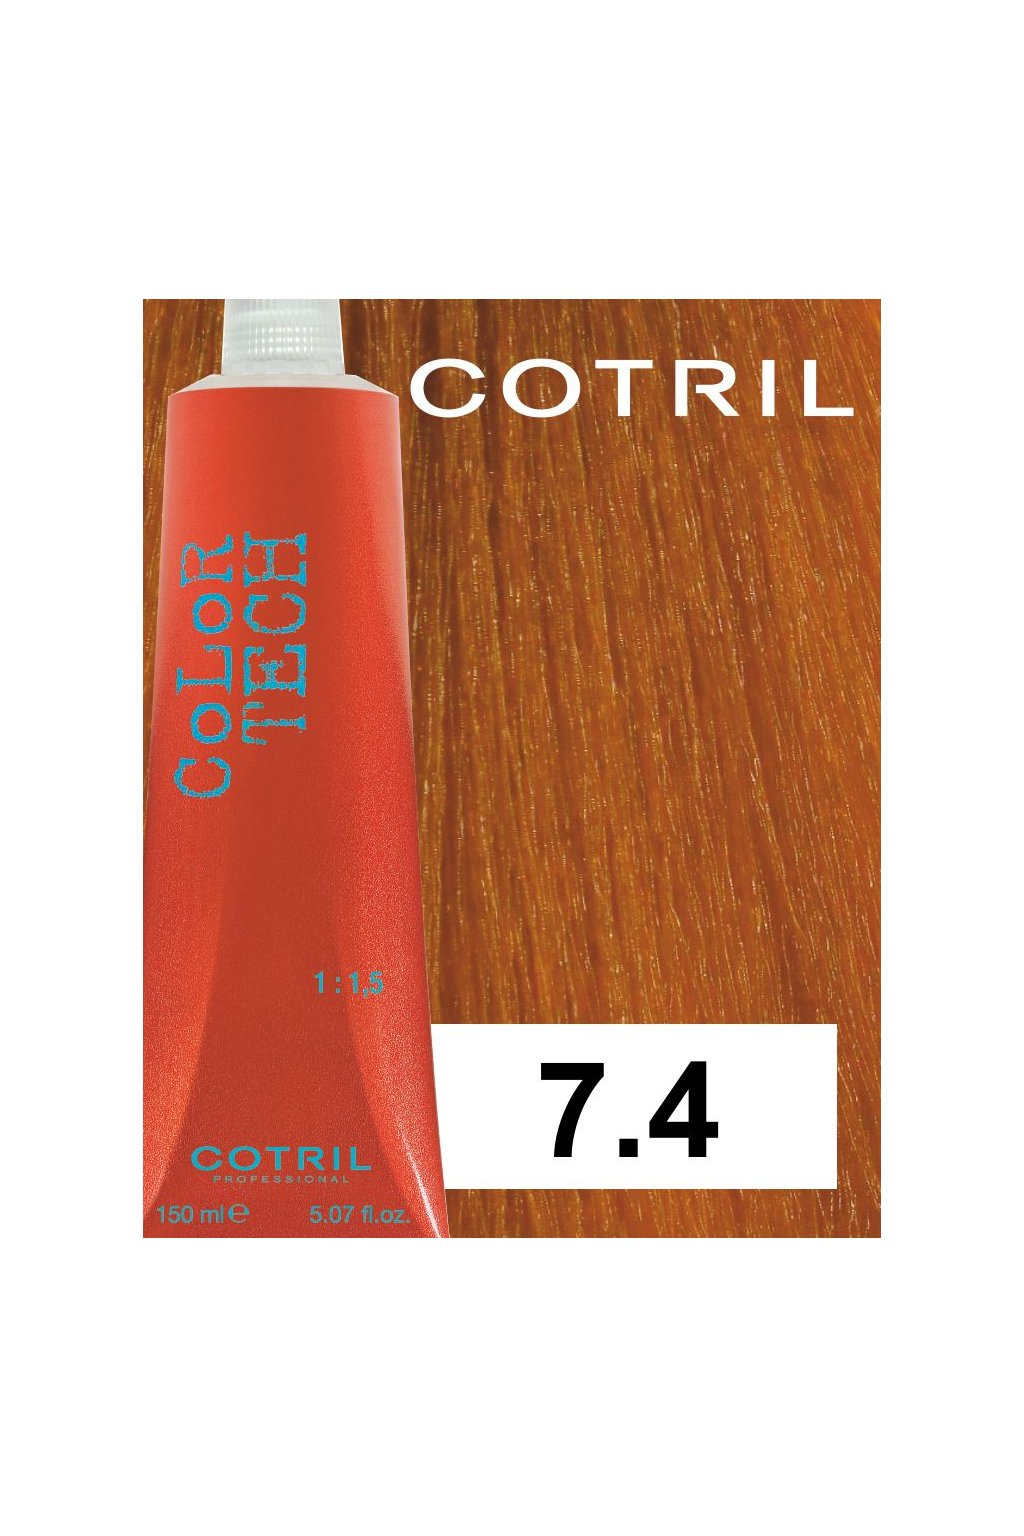 7 4 ct cotril